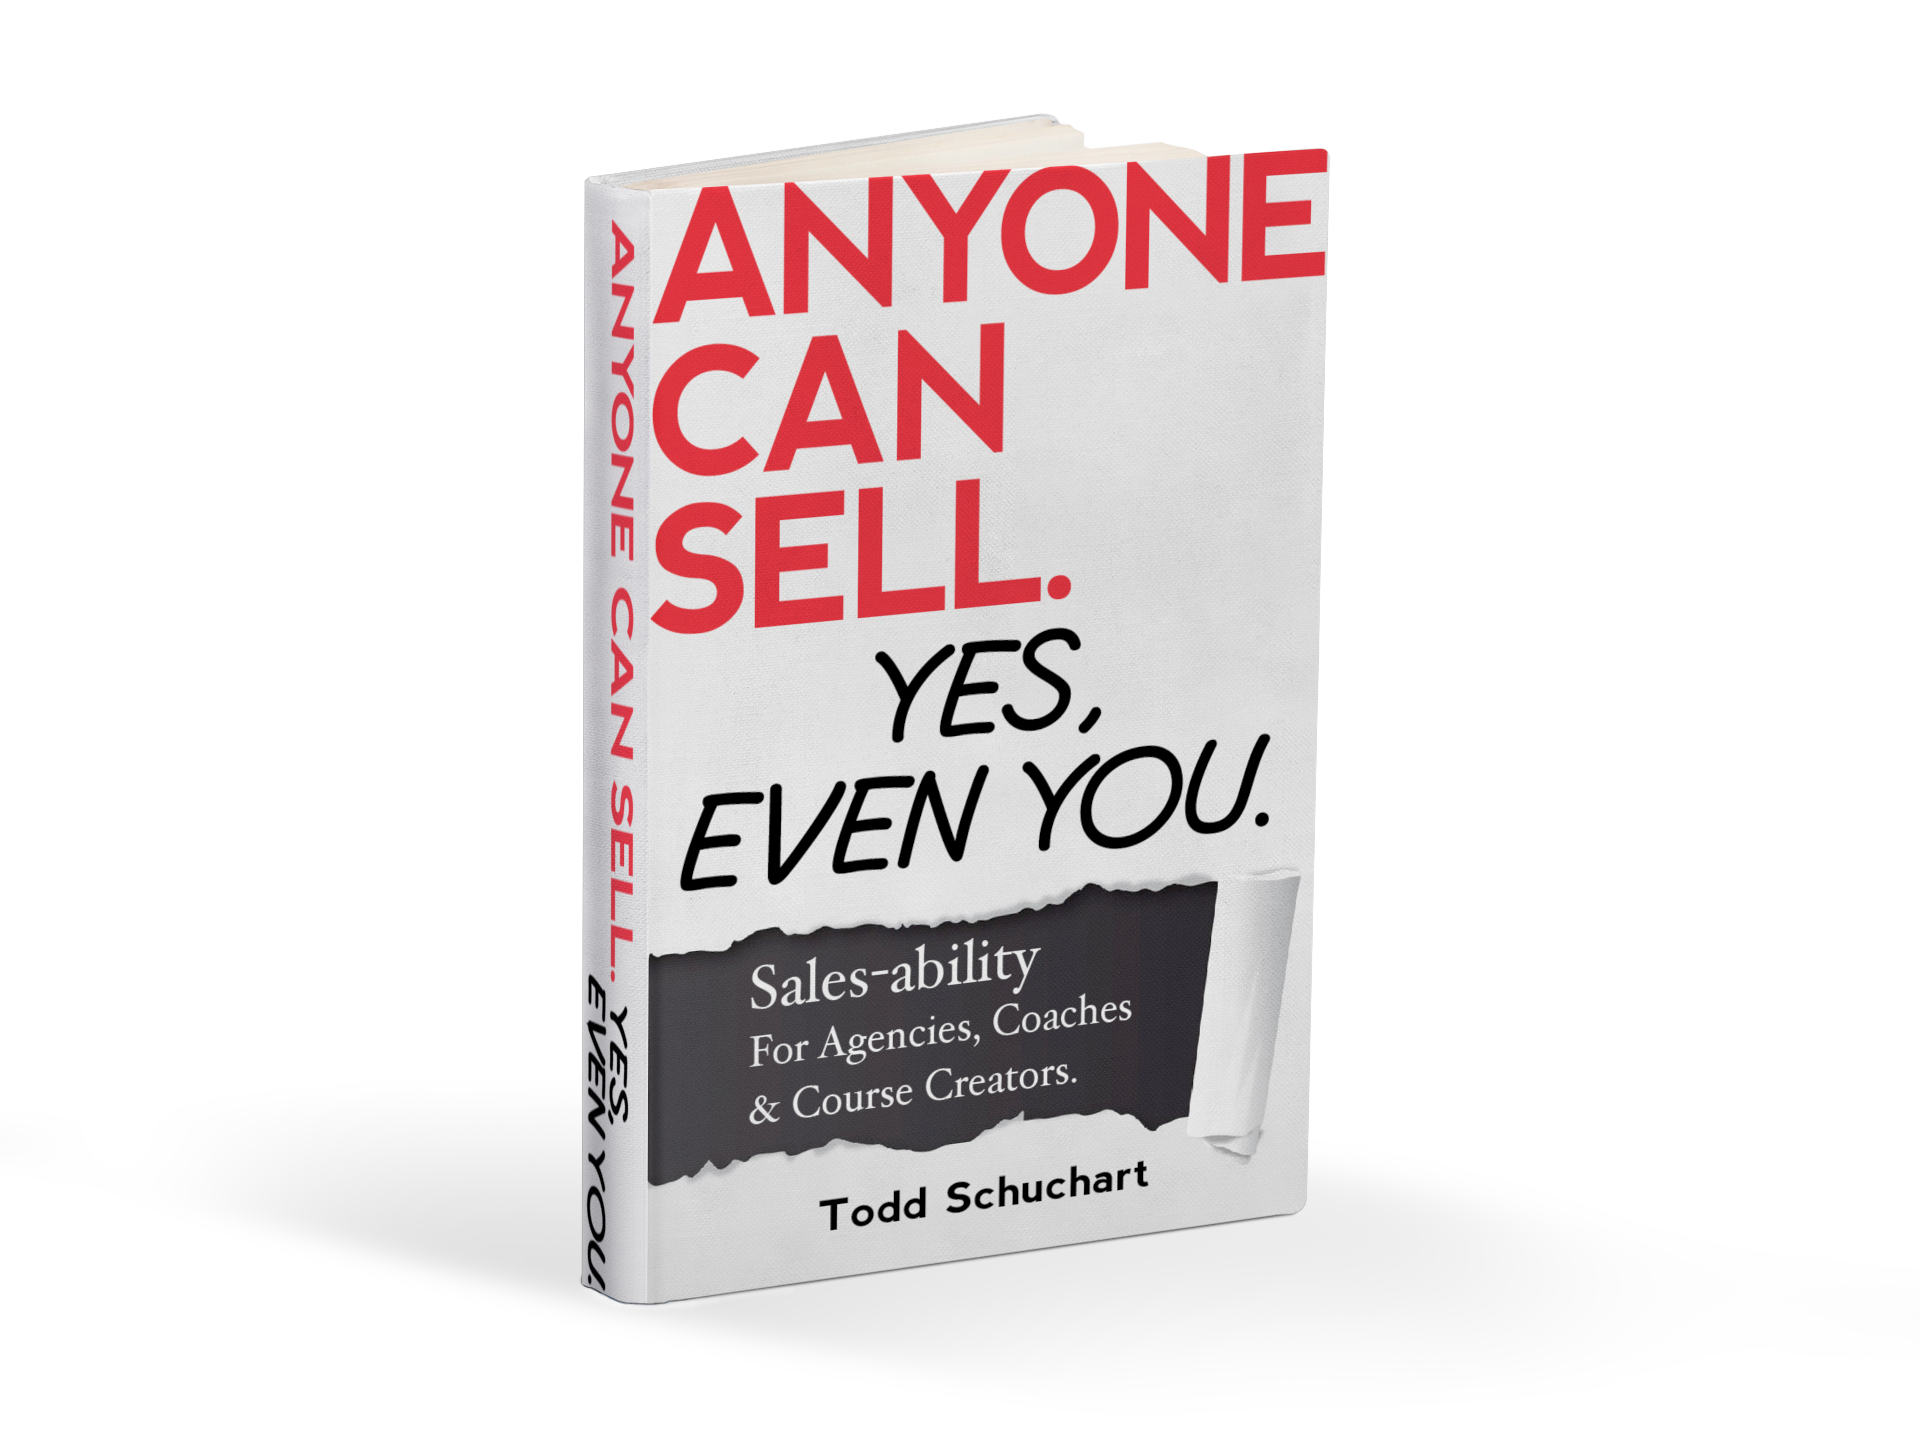 Everyone can Sell, Yes, Even you by Todd Schuchart